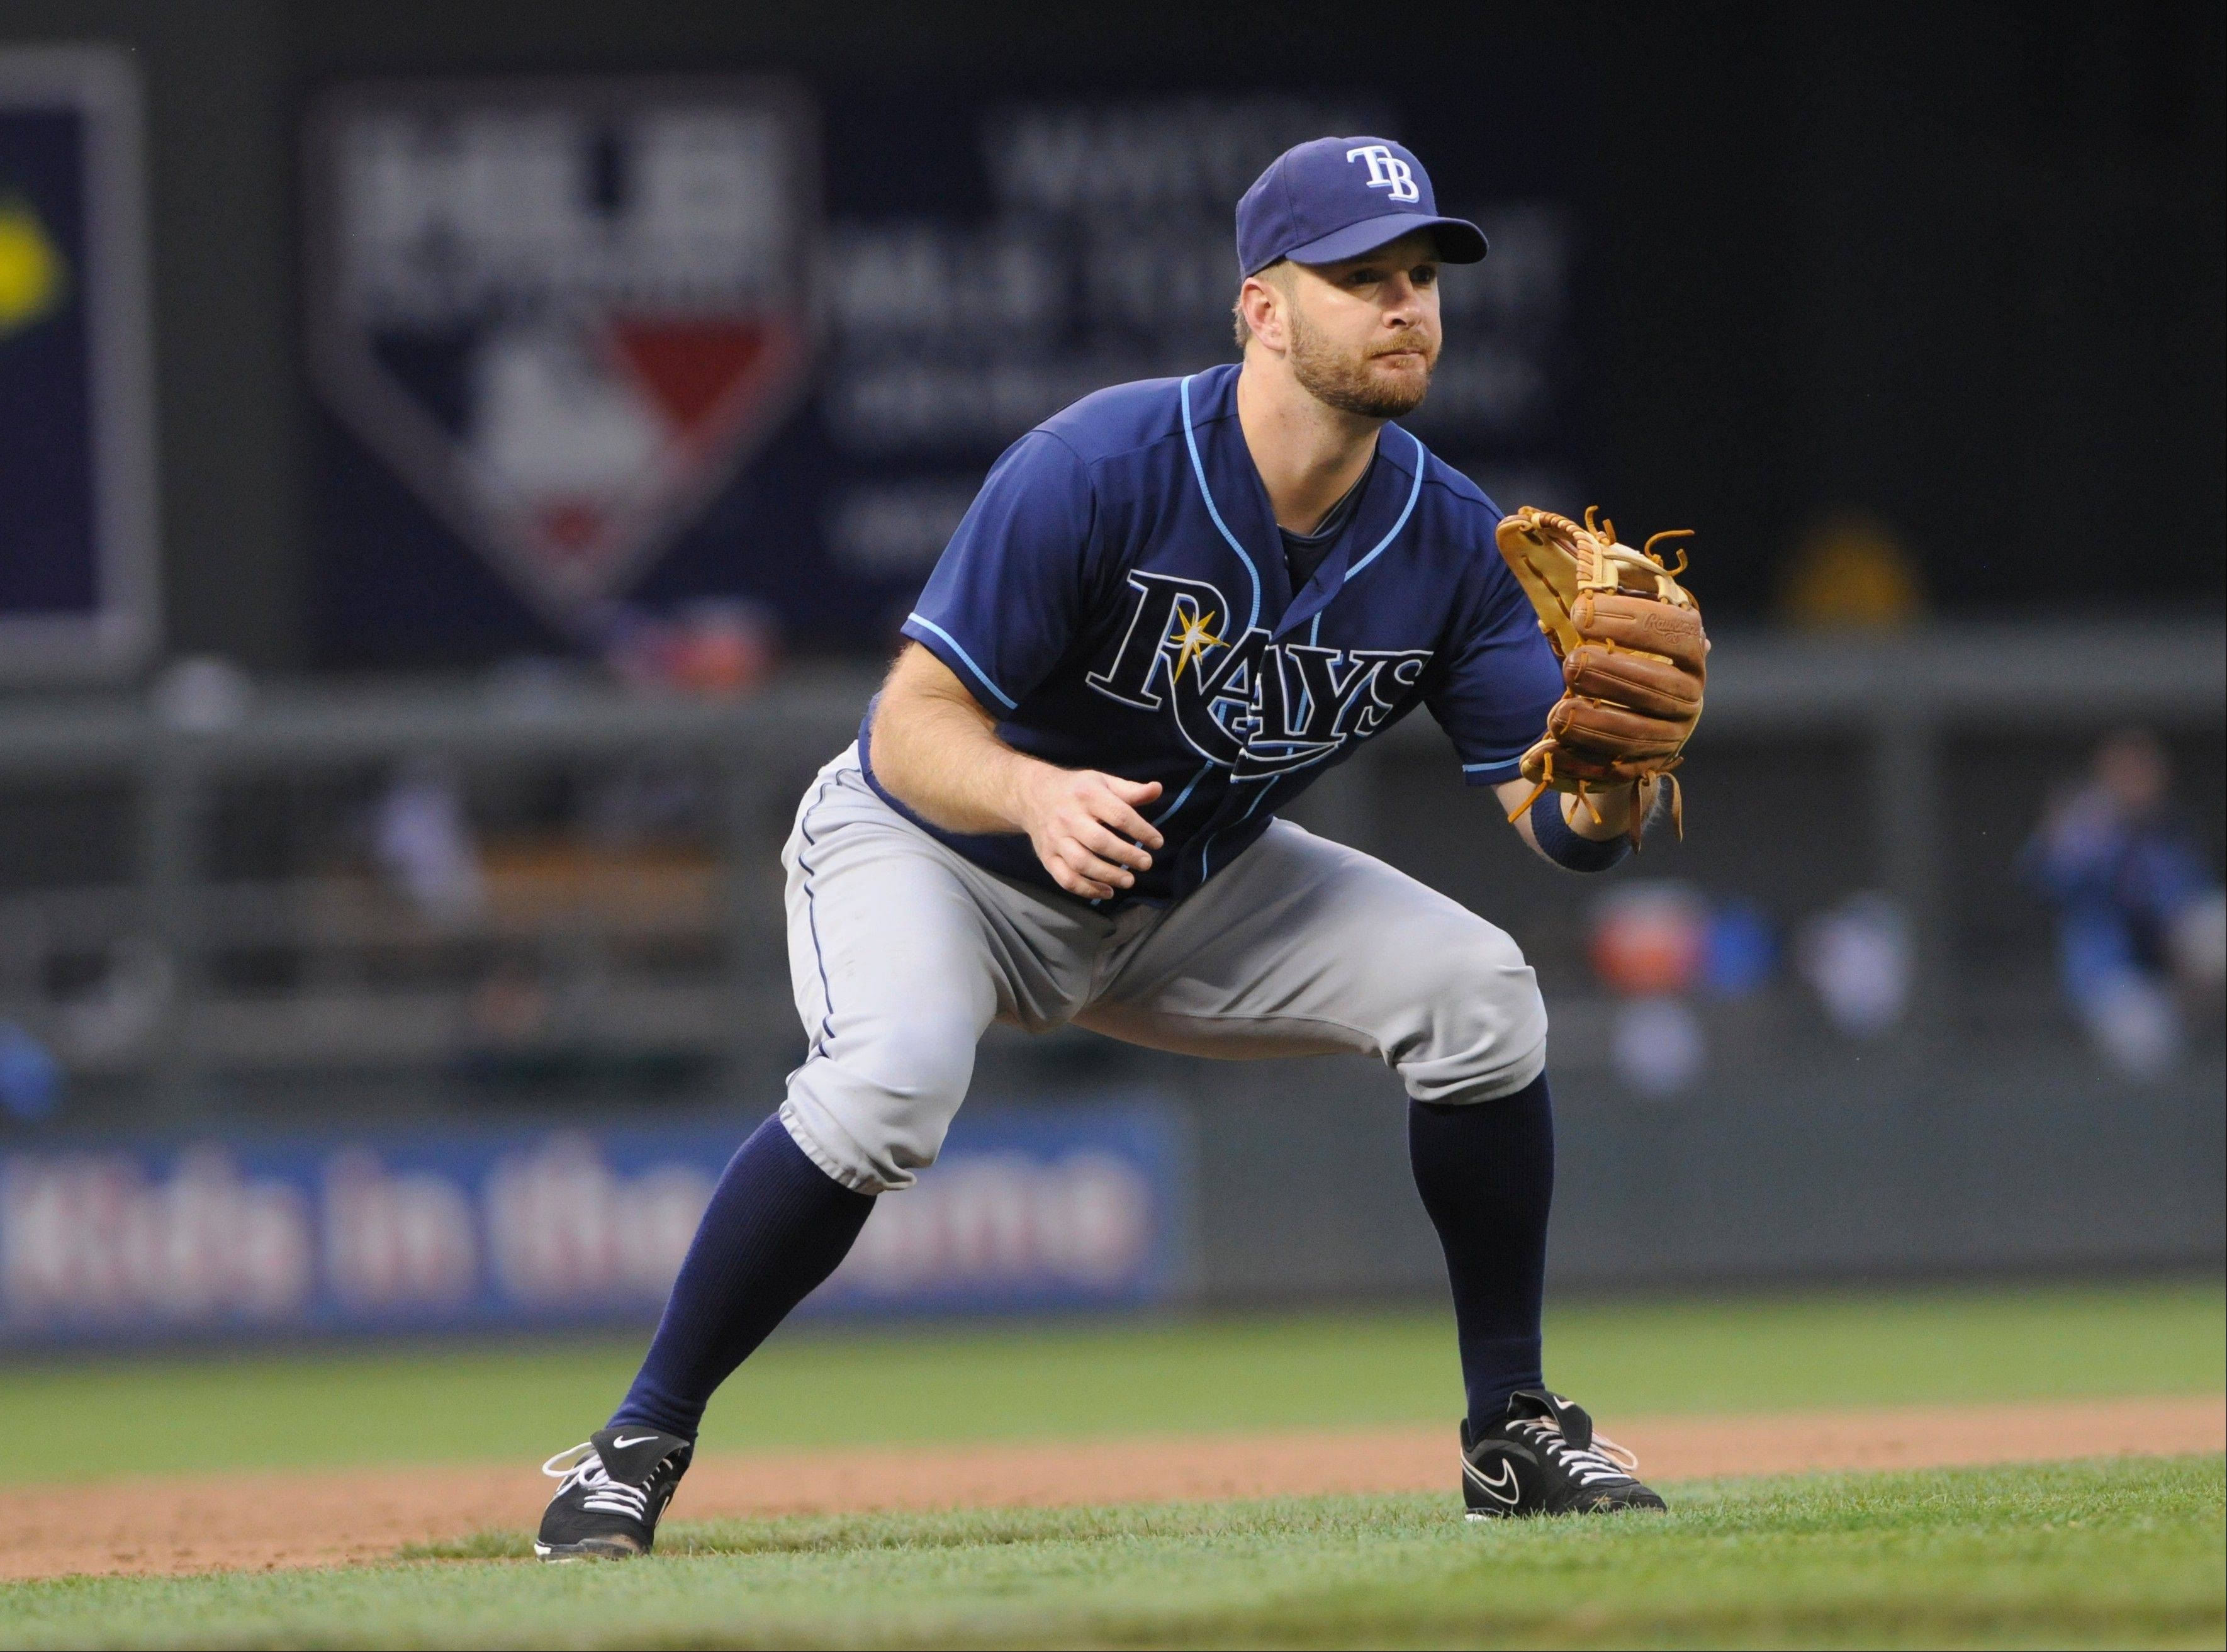 Jeff Keppinger, who was with the Tampa Bay Rays last season, will fill an infield void for the White Sox.